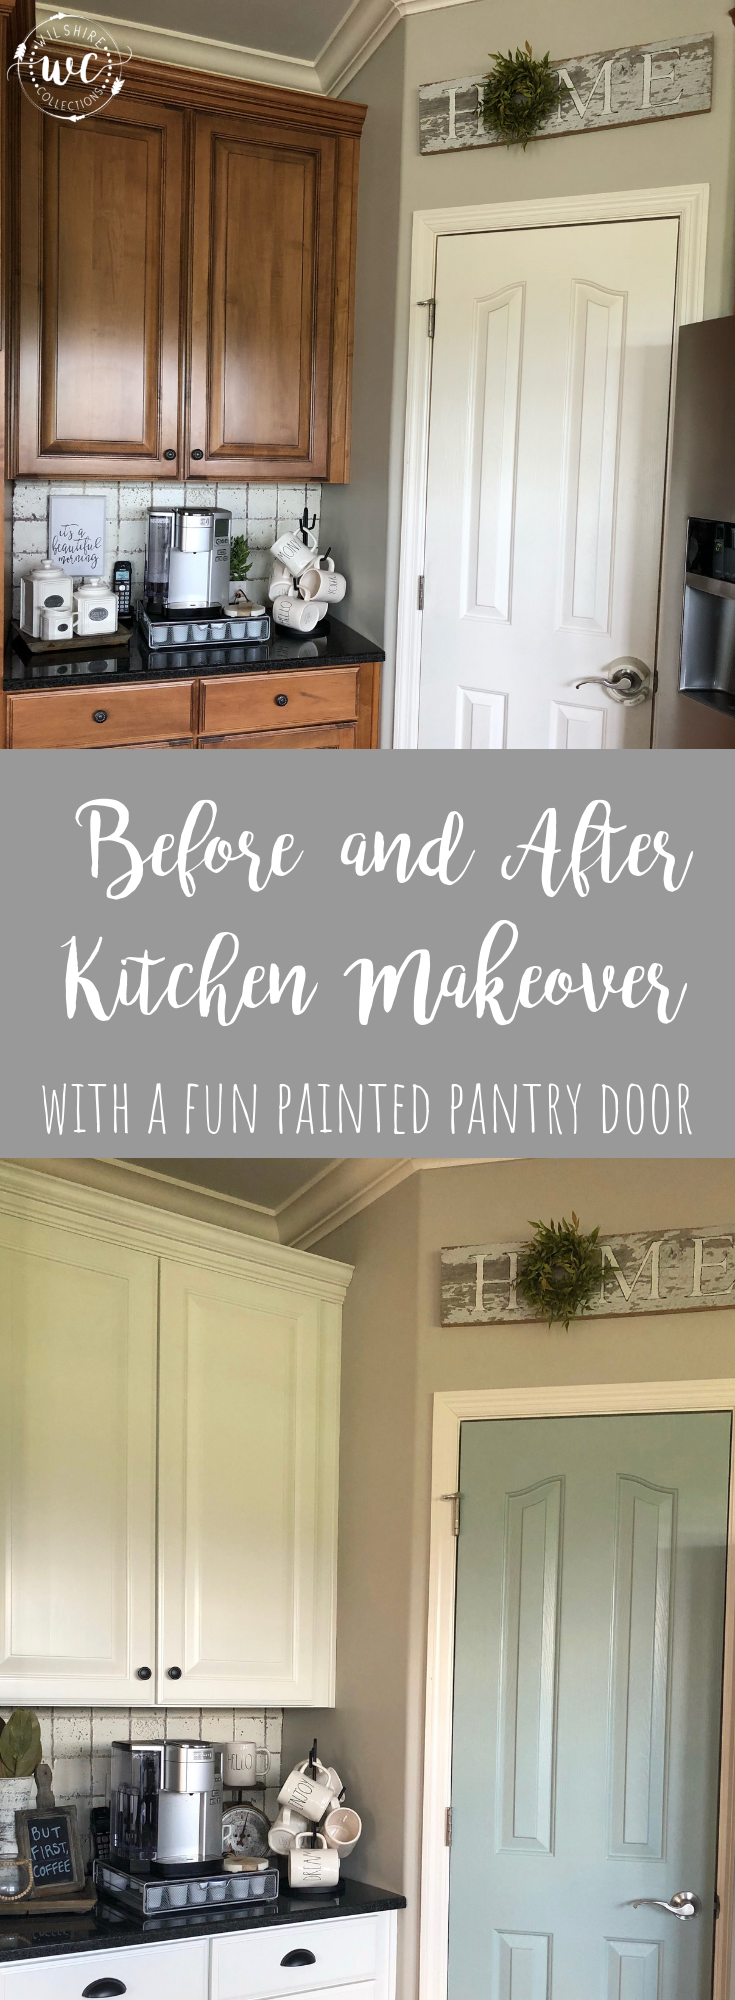 My painted kitchen cabinet makeover with a fun painted pantry door! Before and after pics!